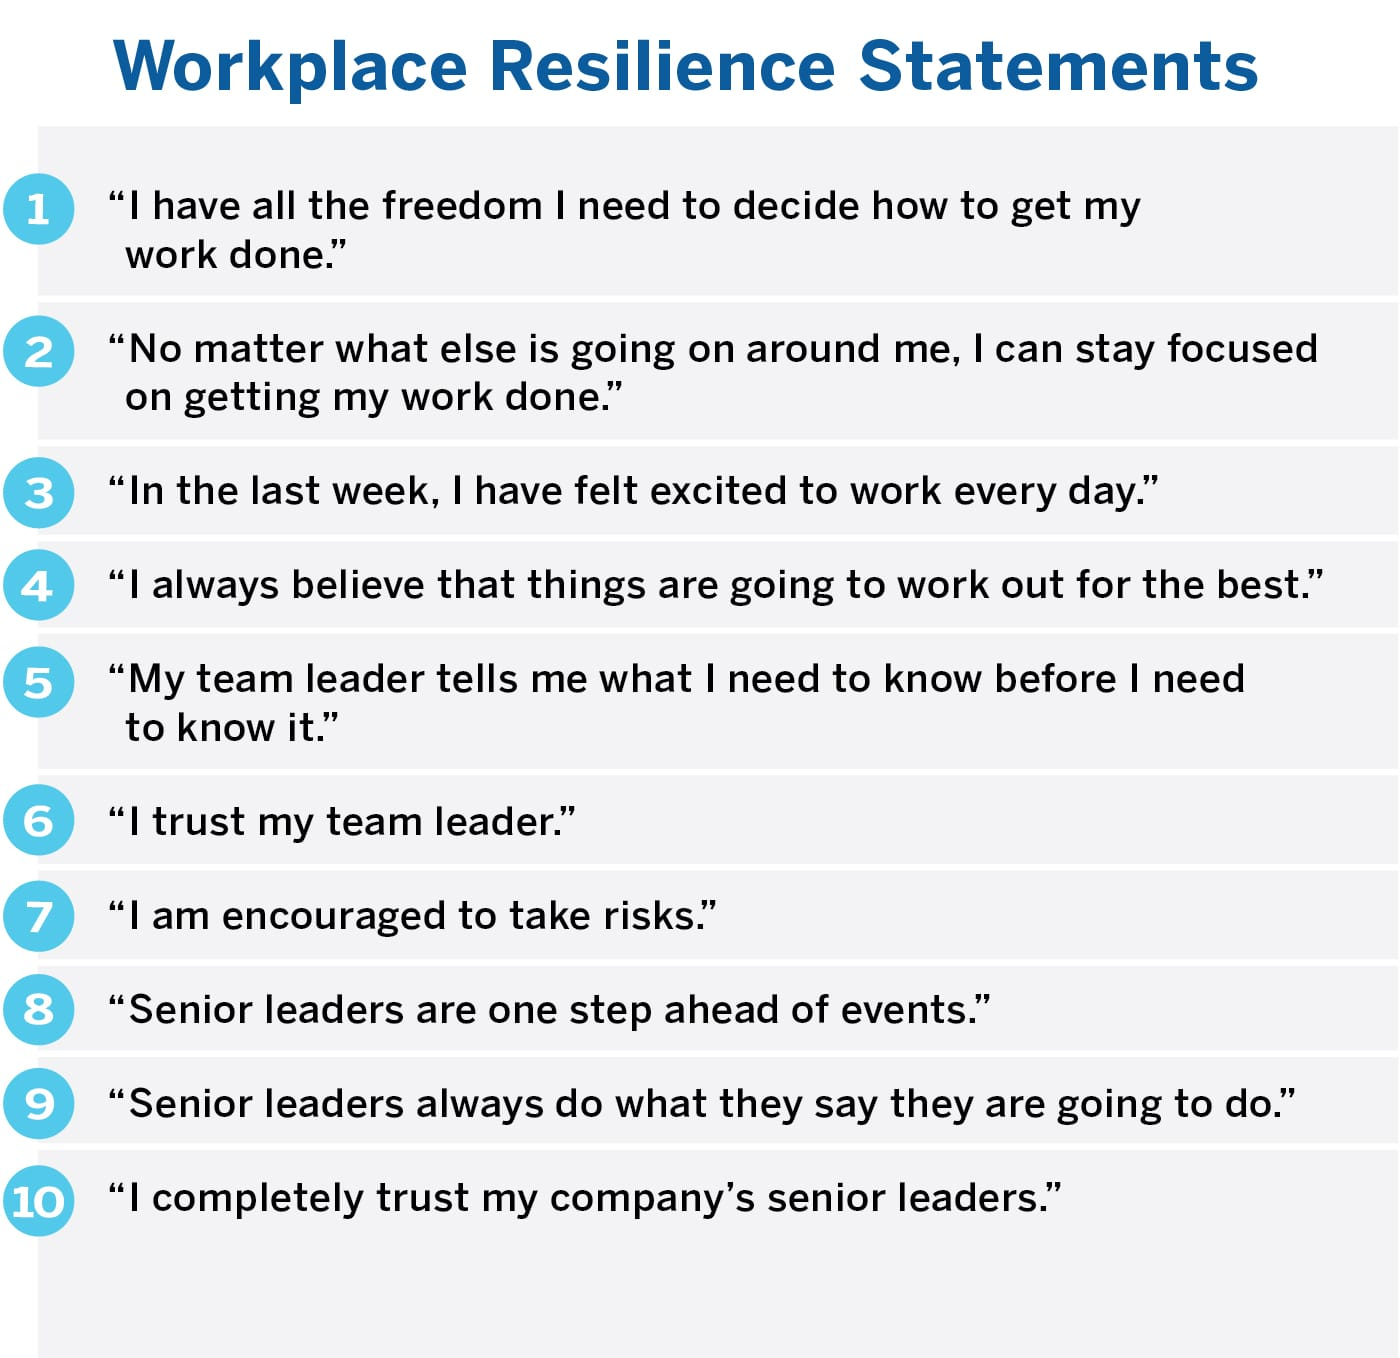 Workplace Resilience Statements